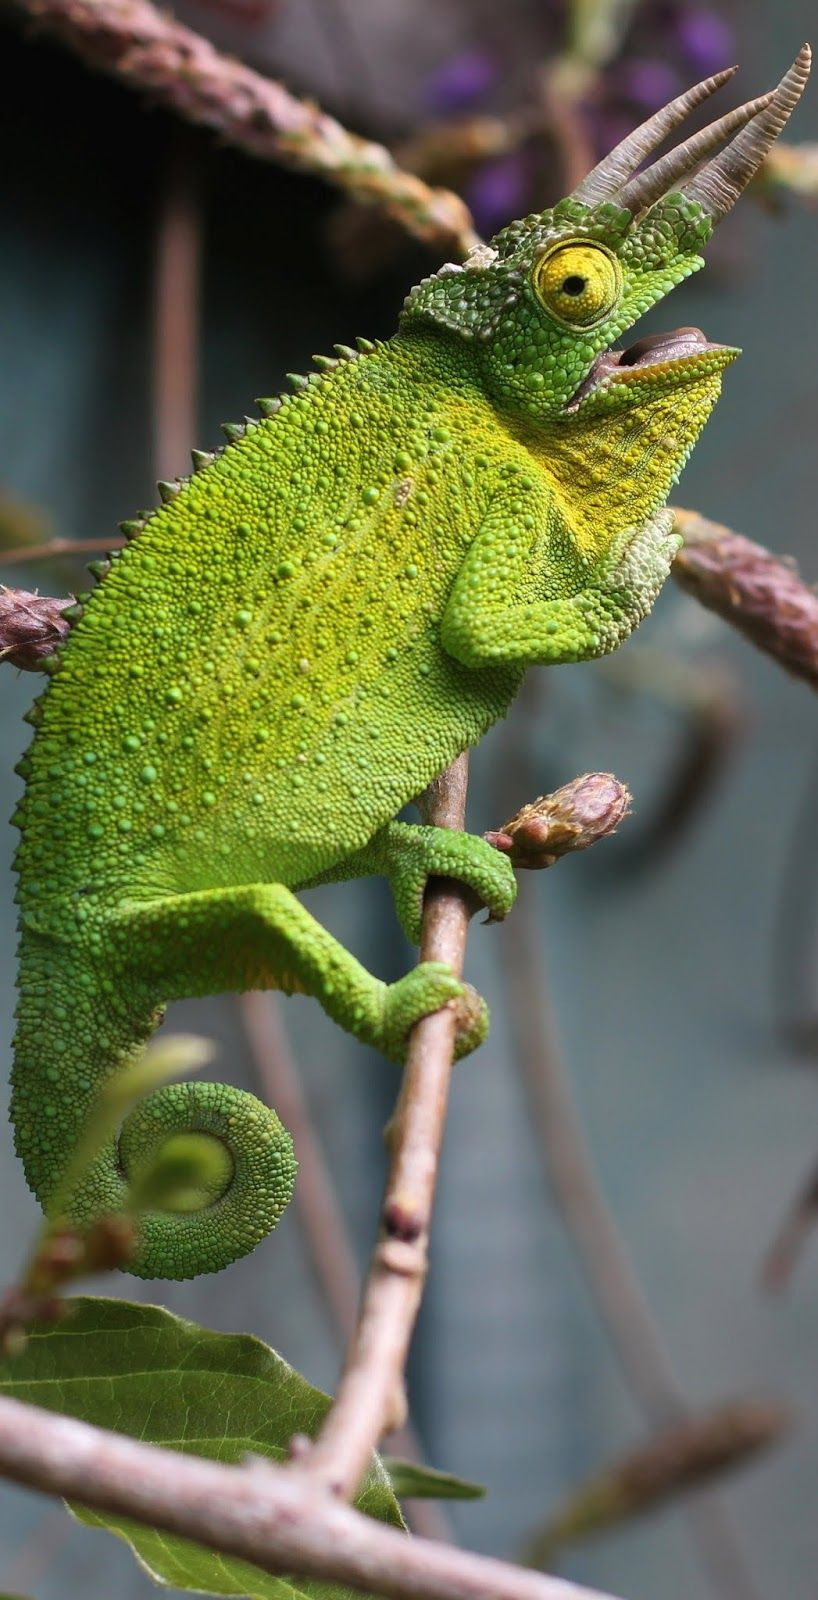 A three horned chameleon